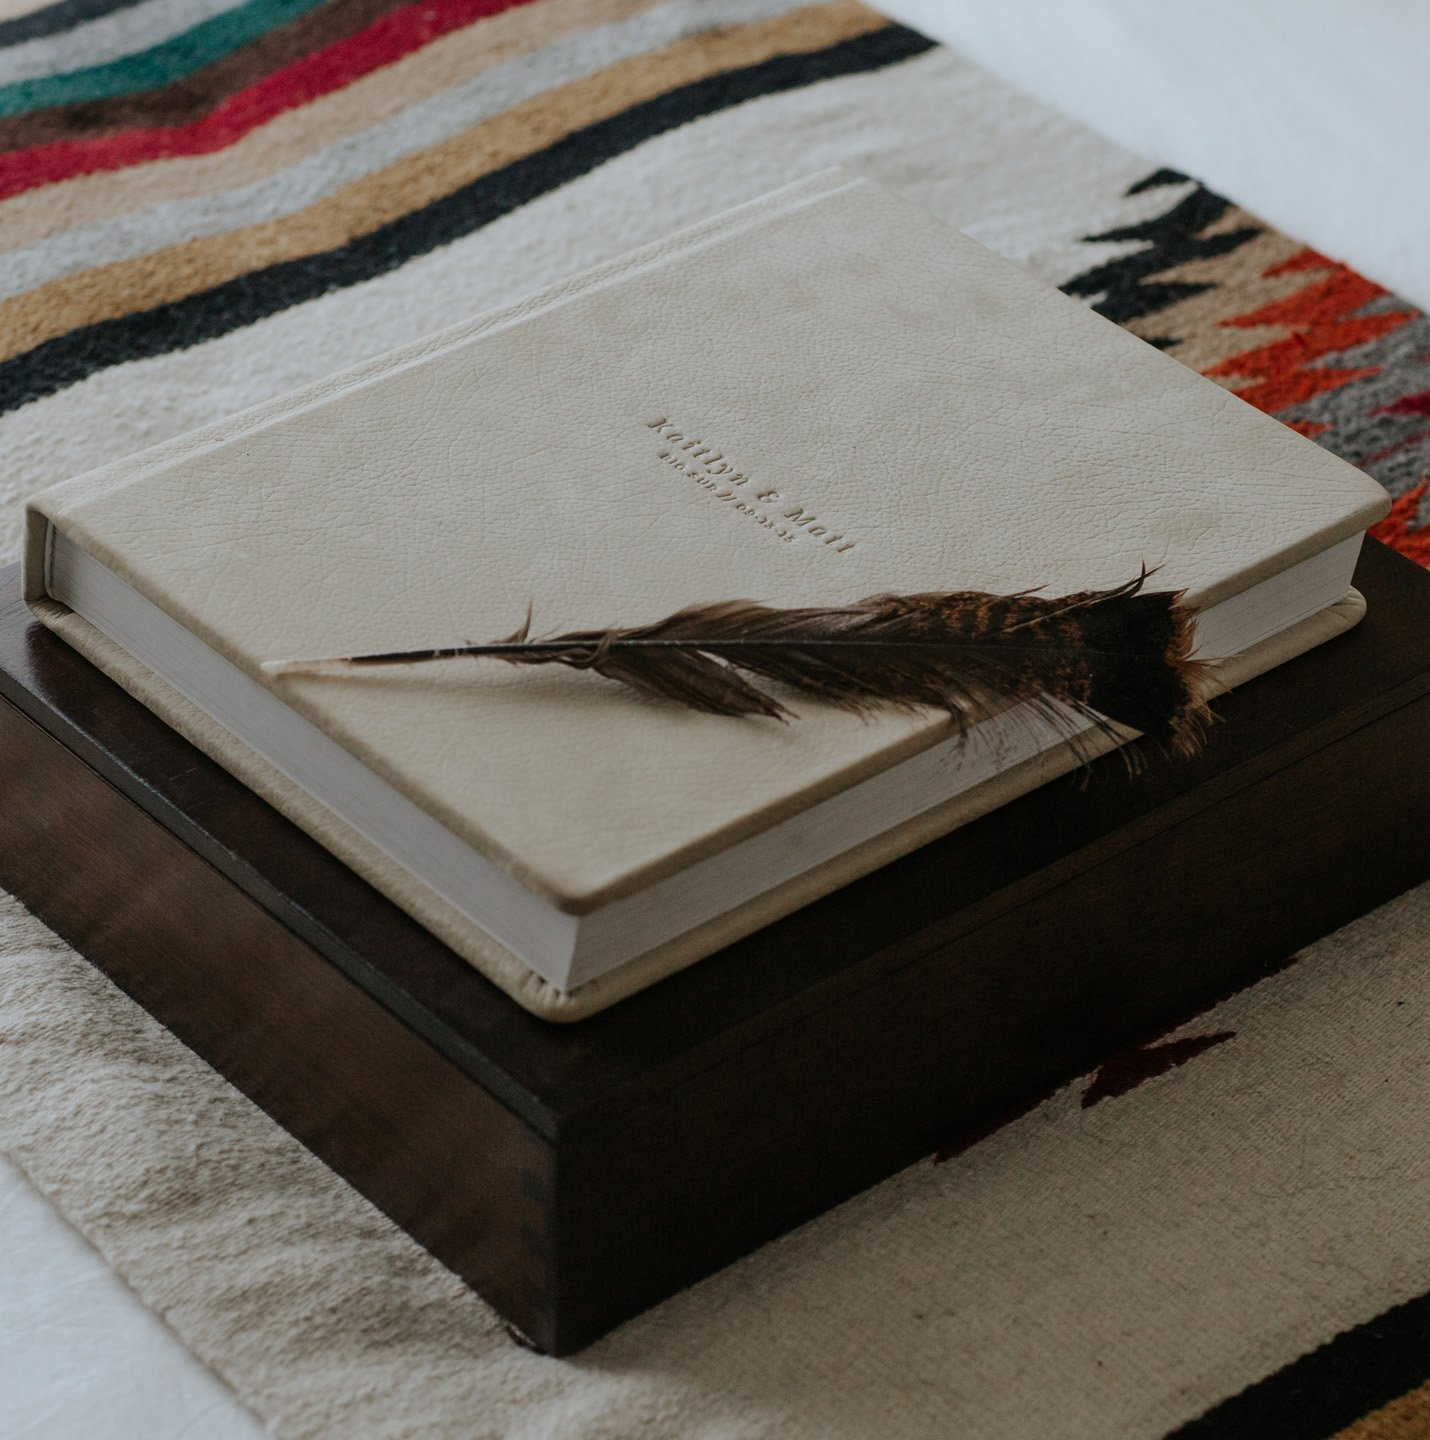 Walnut Boxes Heirloom Album Paige Nelson